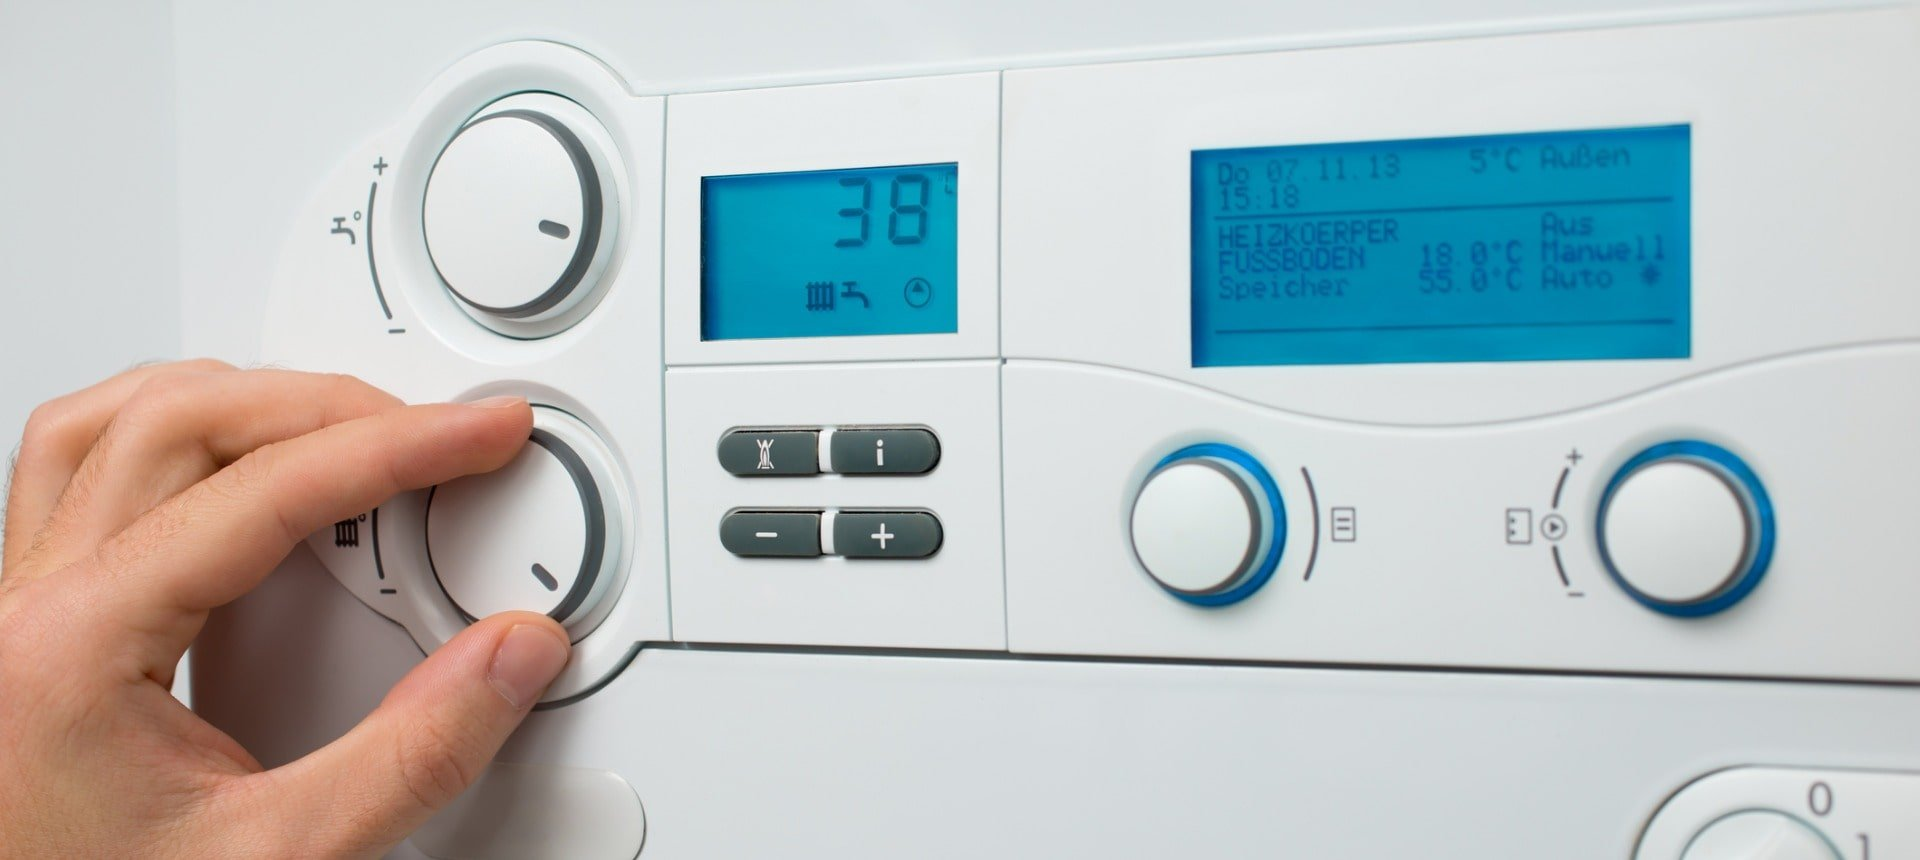 heating-boiler-picture-id454947413-min